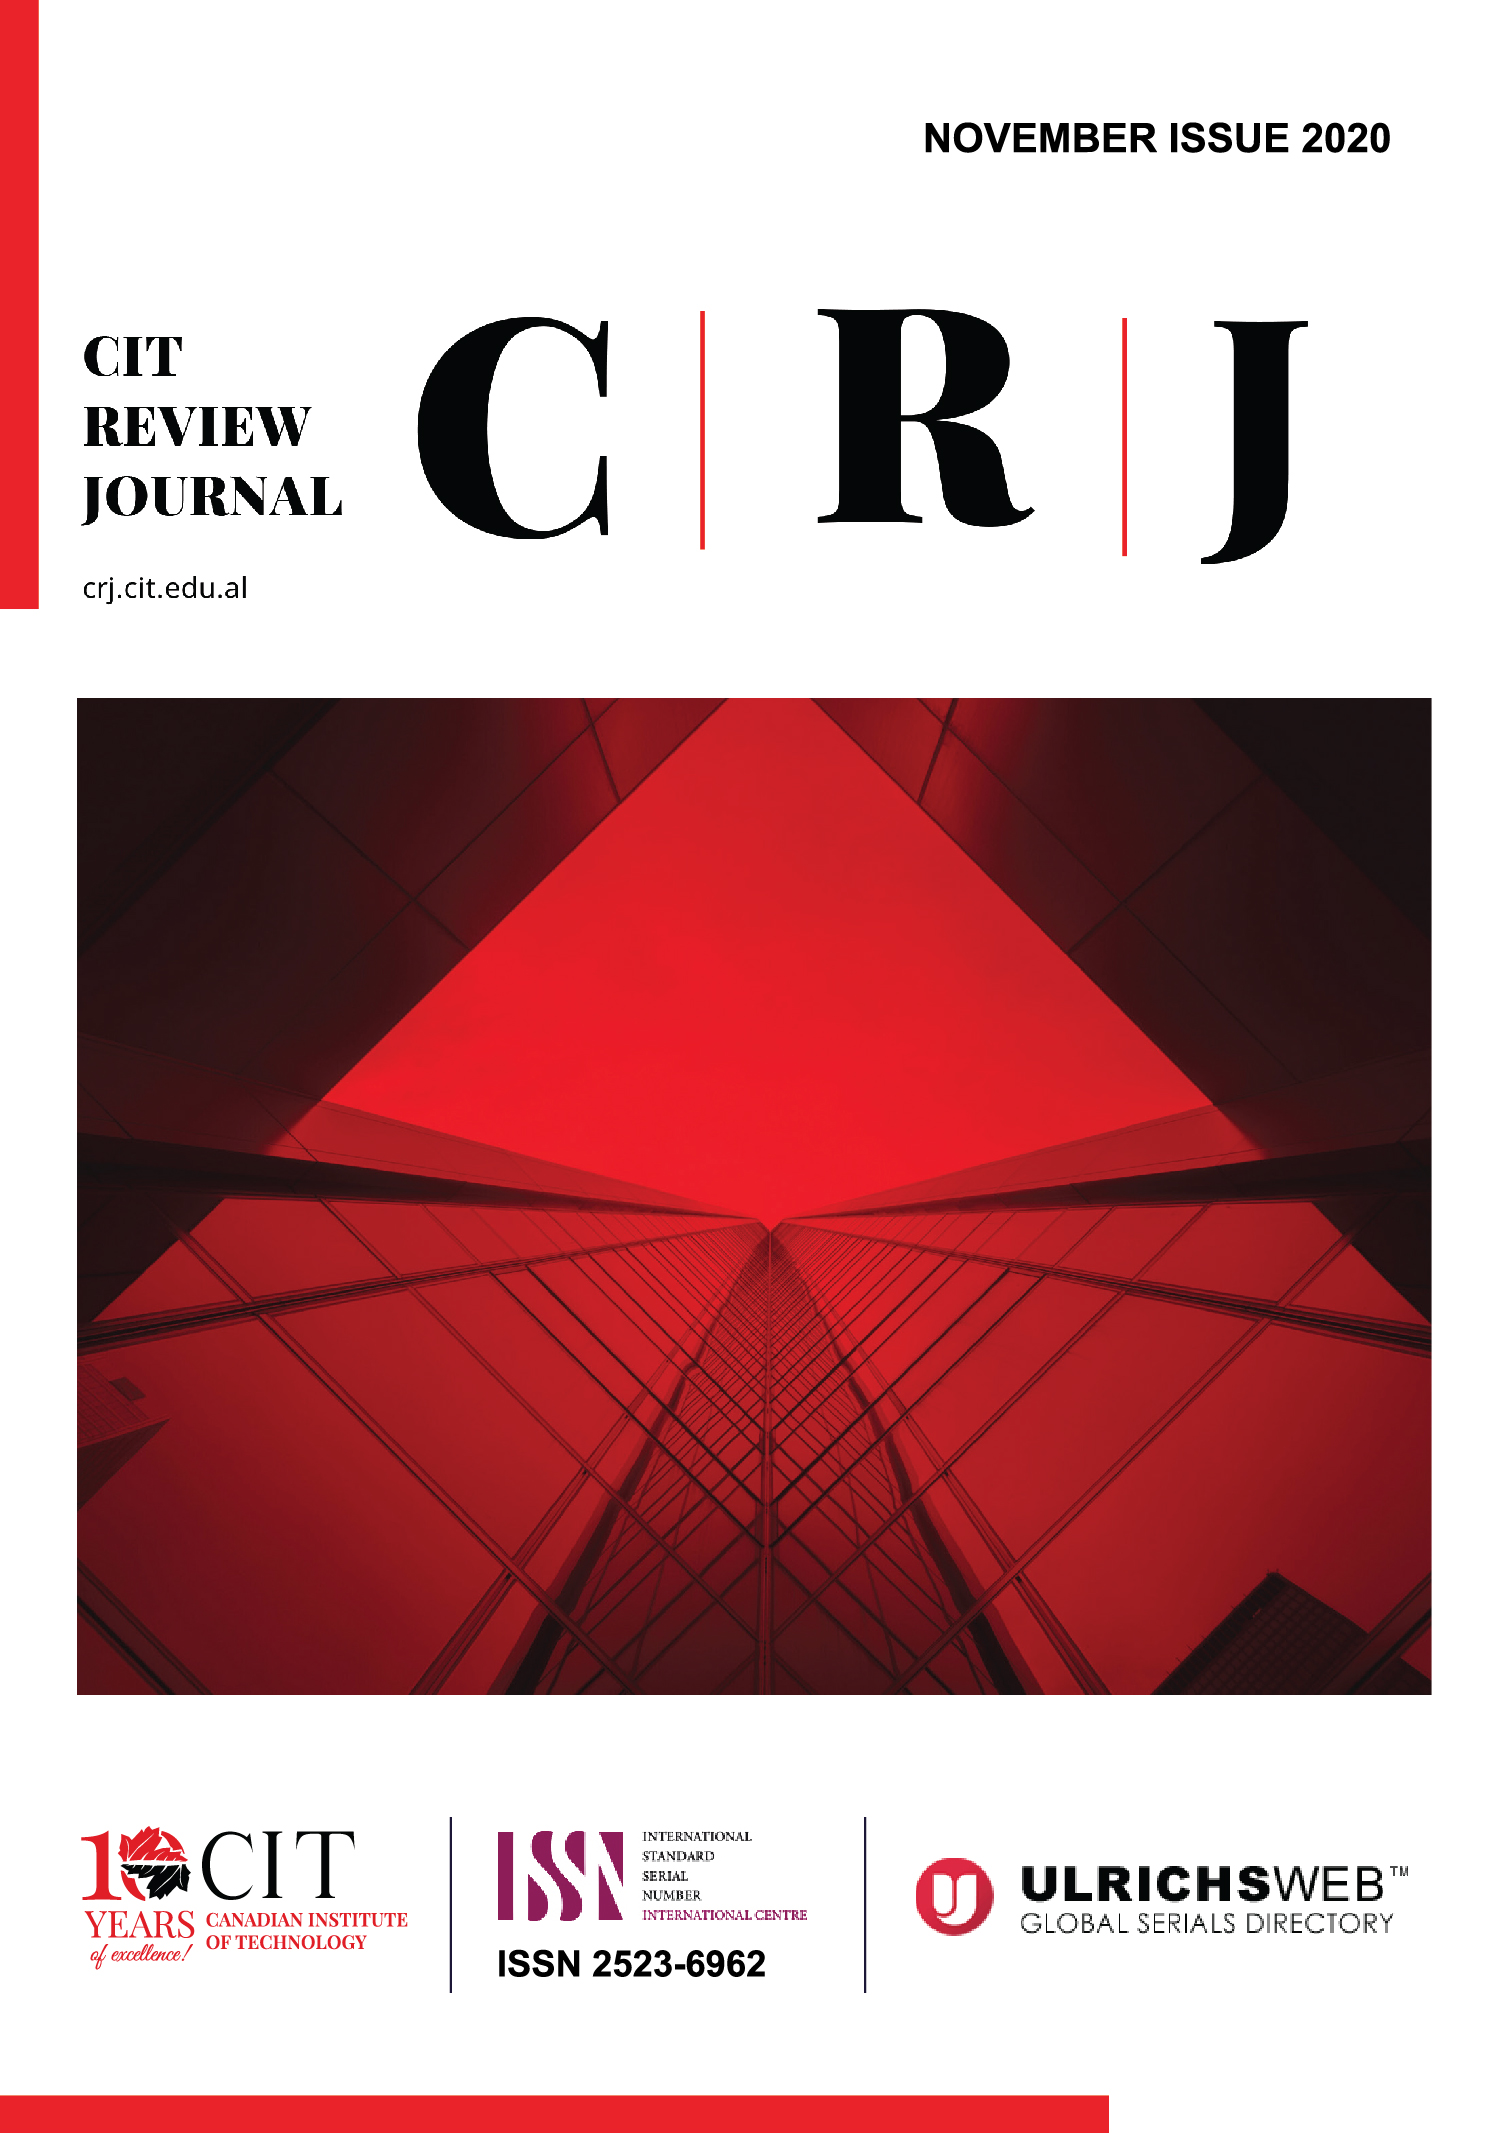 CIT Review Journal November Issue 2020